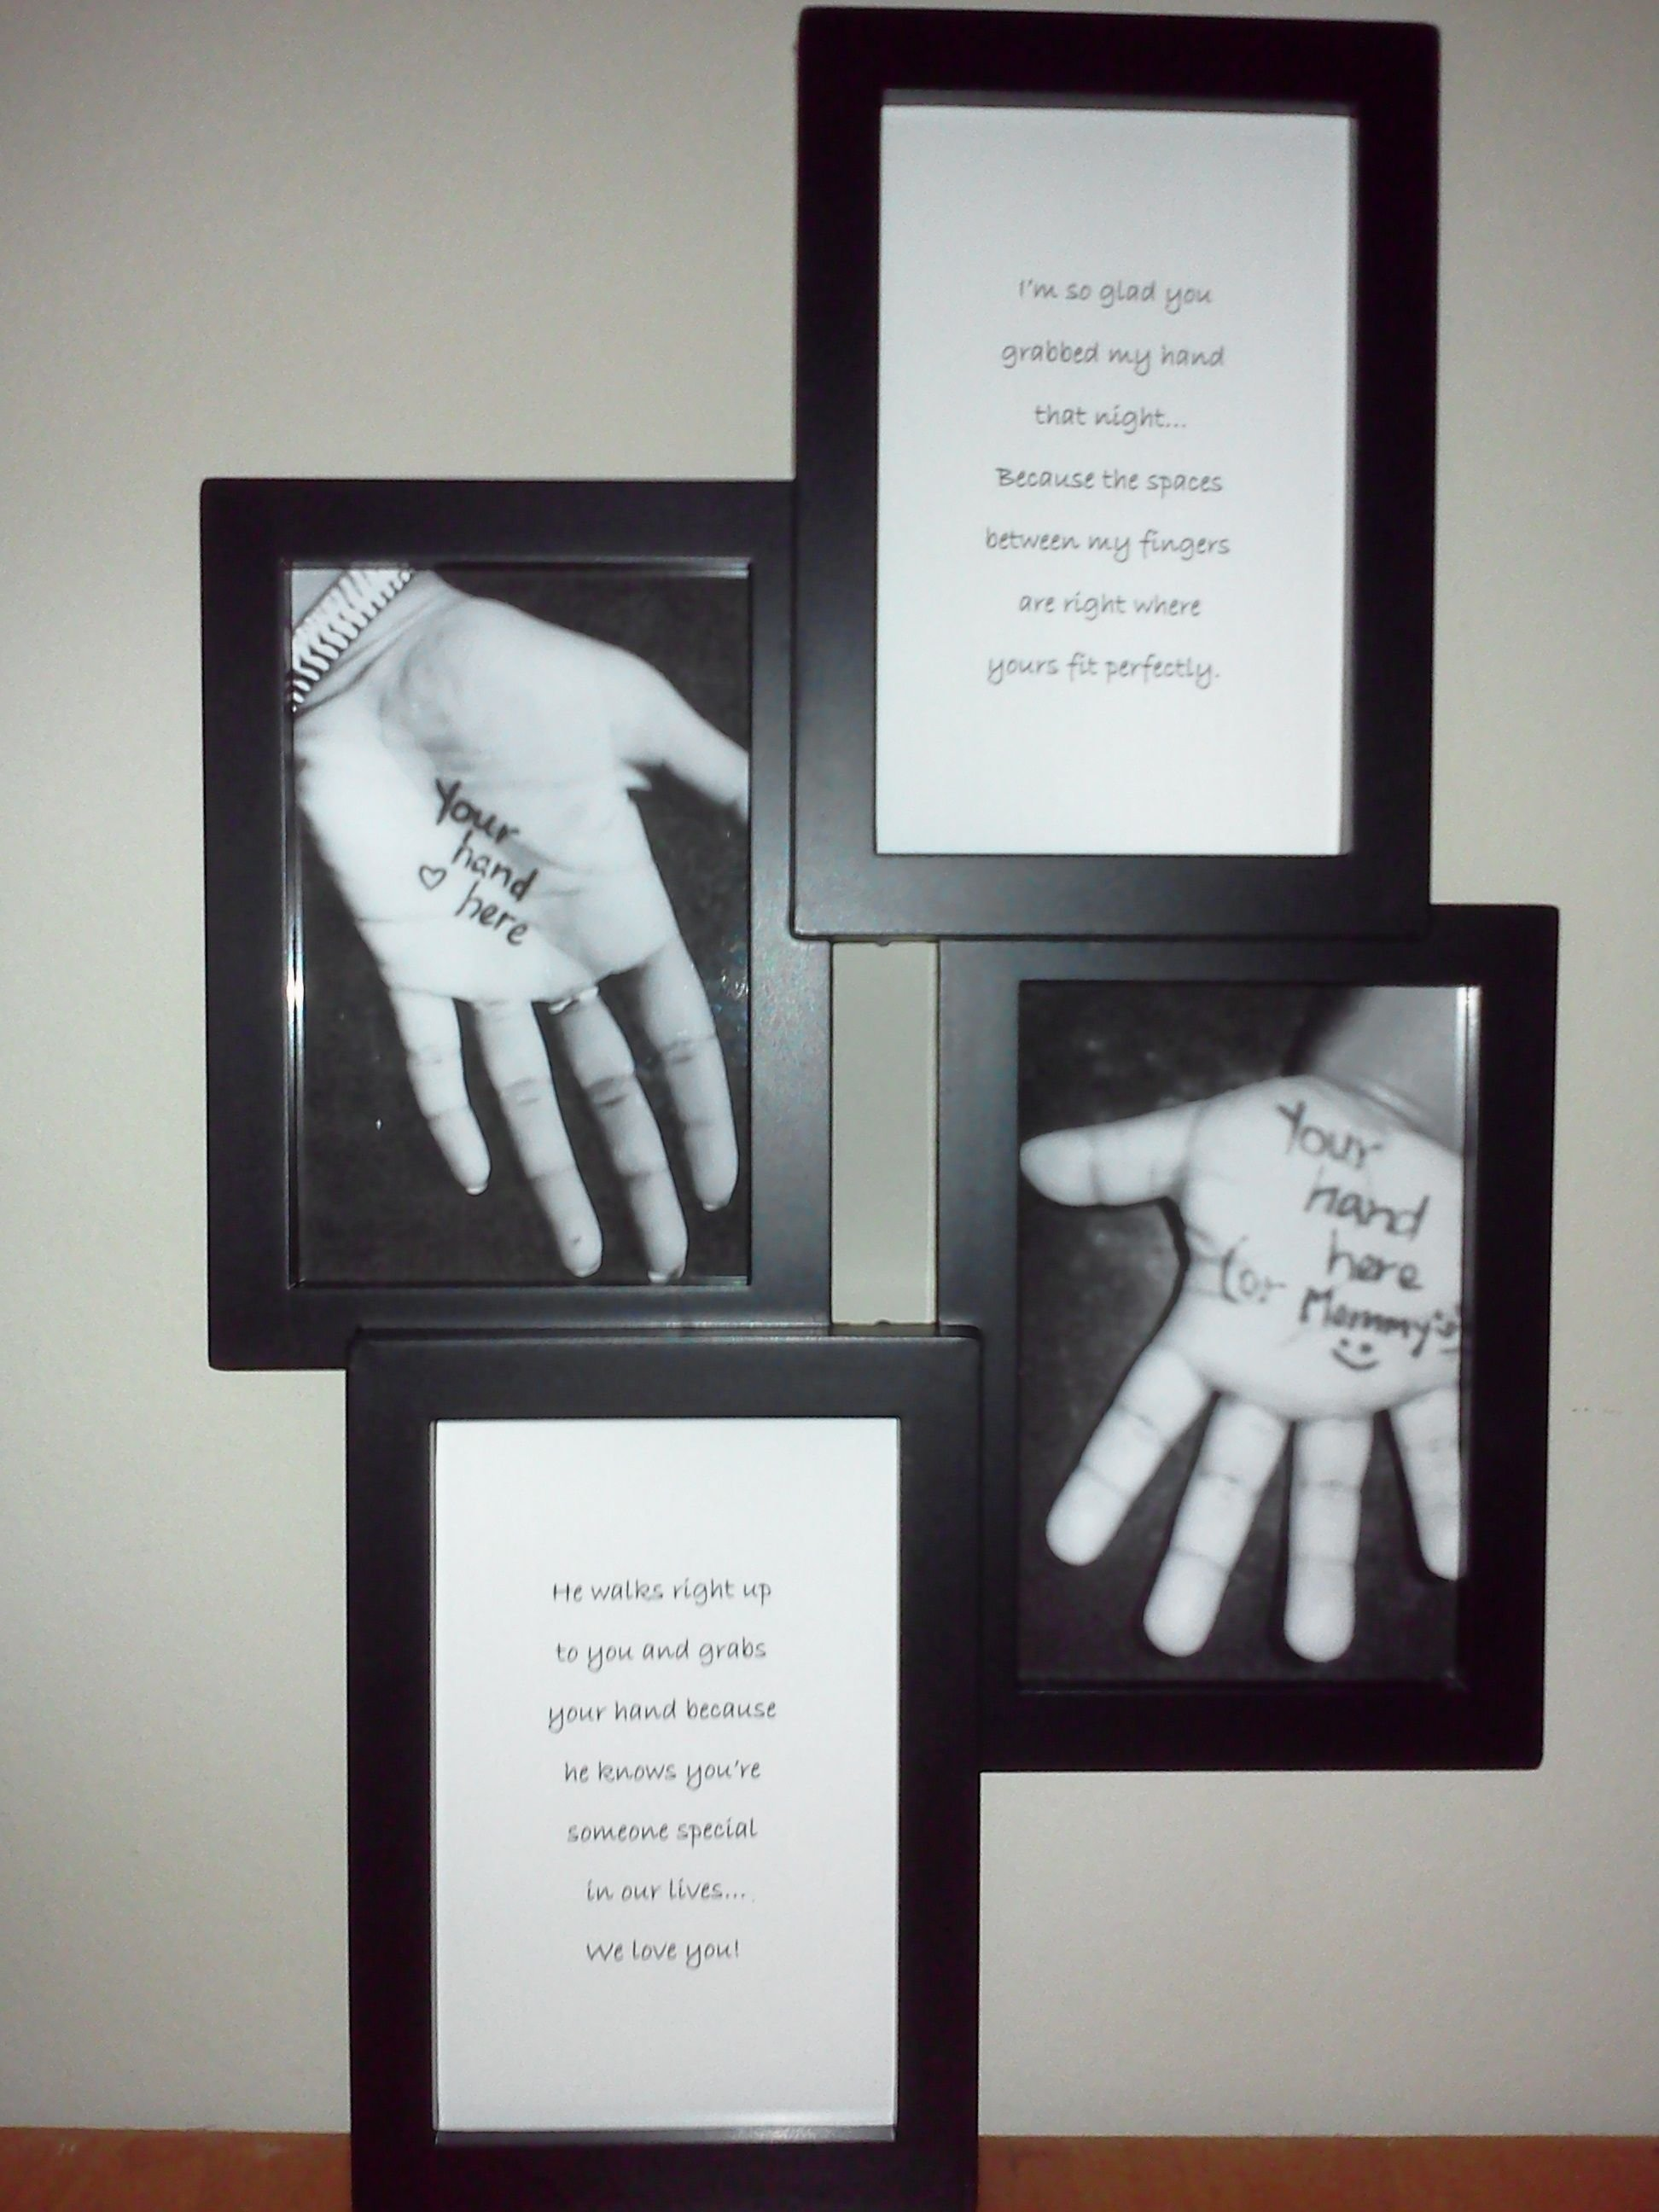 10 Fashionable Diy Anniversary Gift Ideas For Him diy anniversary gift ideas for him you can find out more details 1 2020